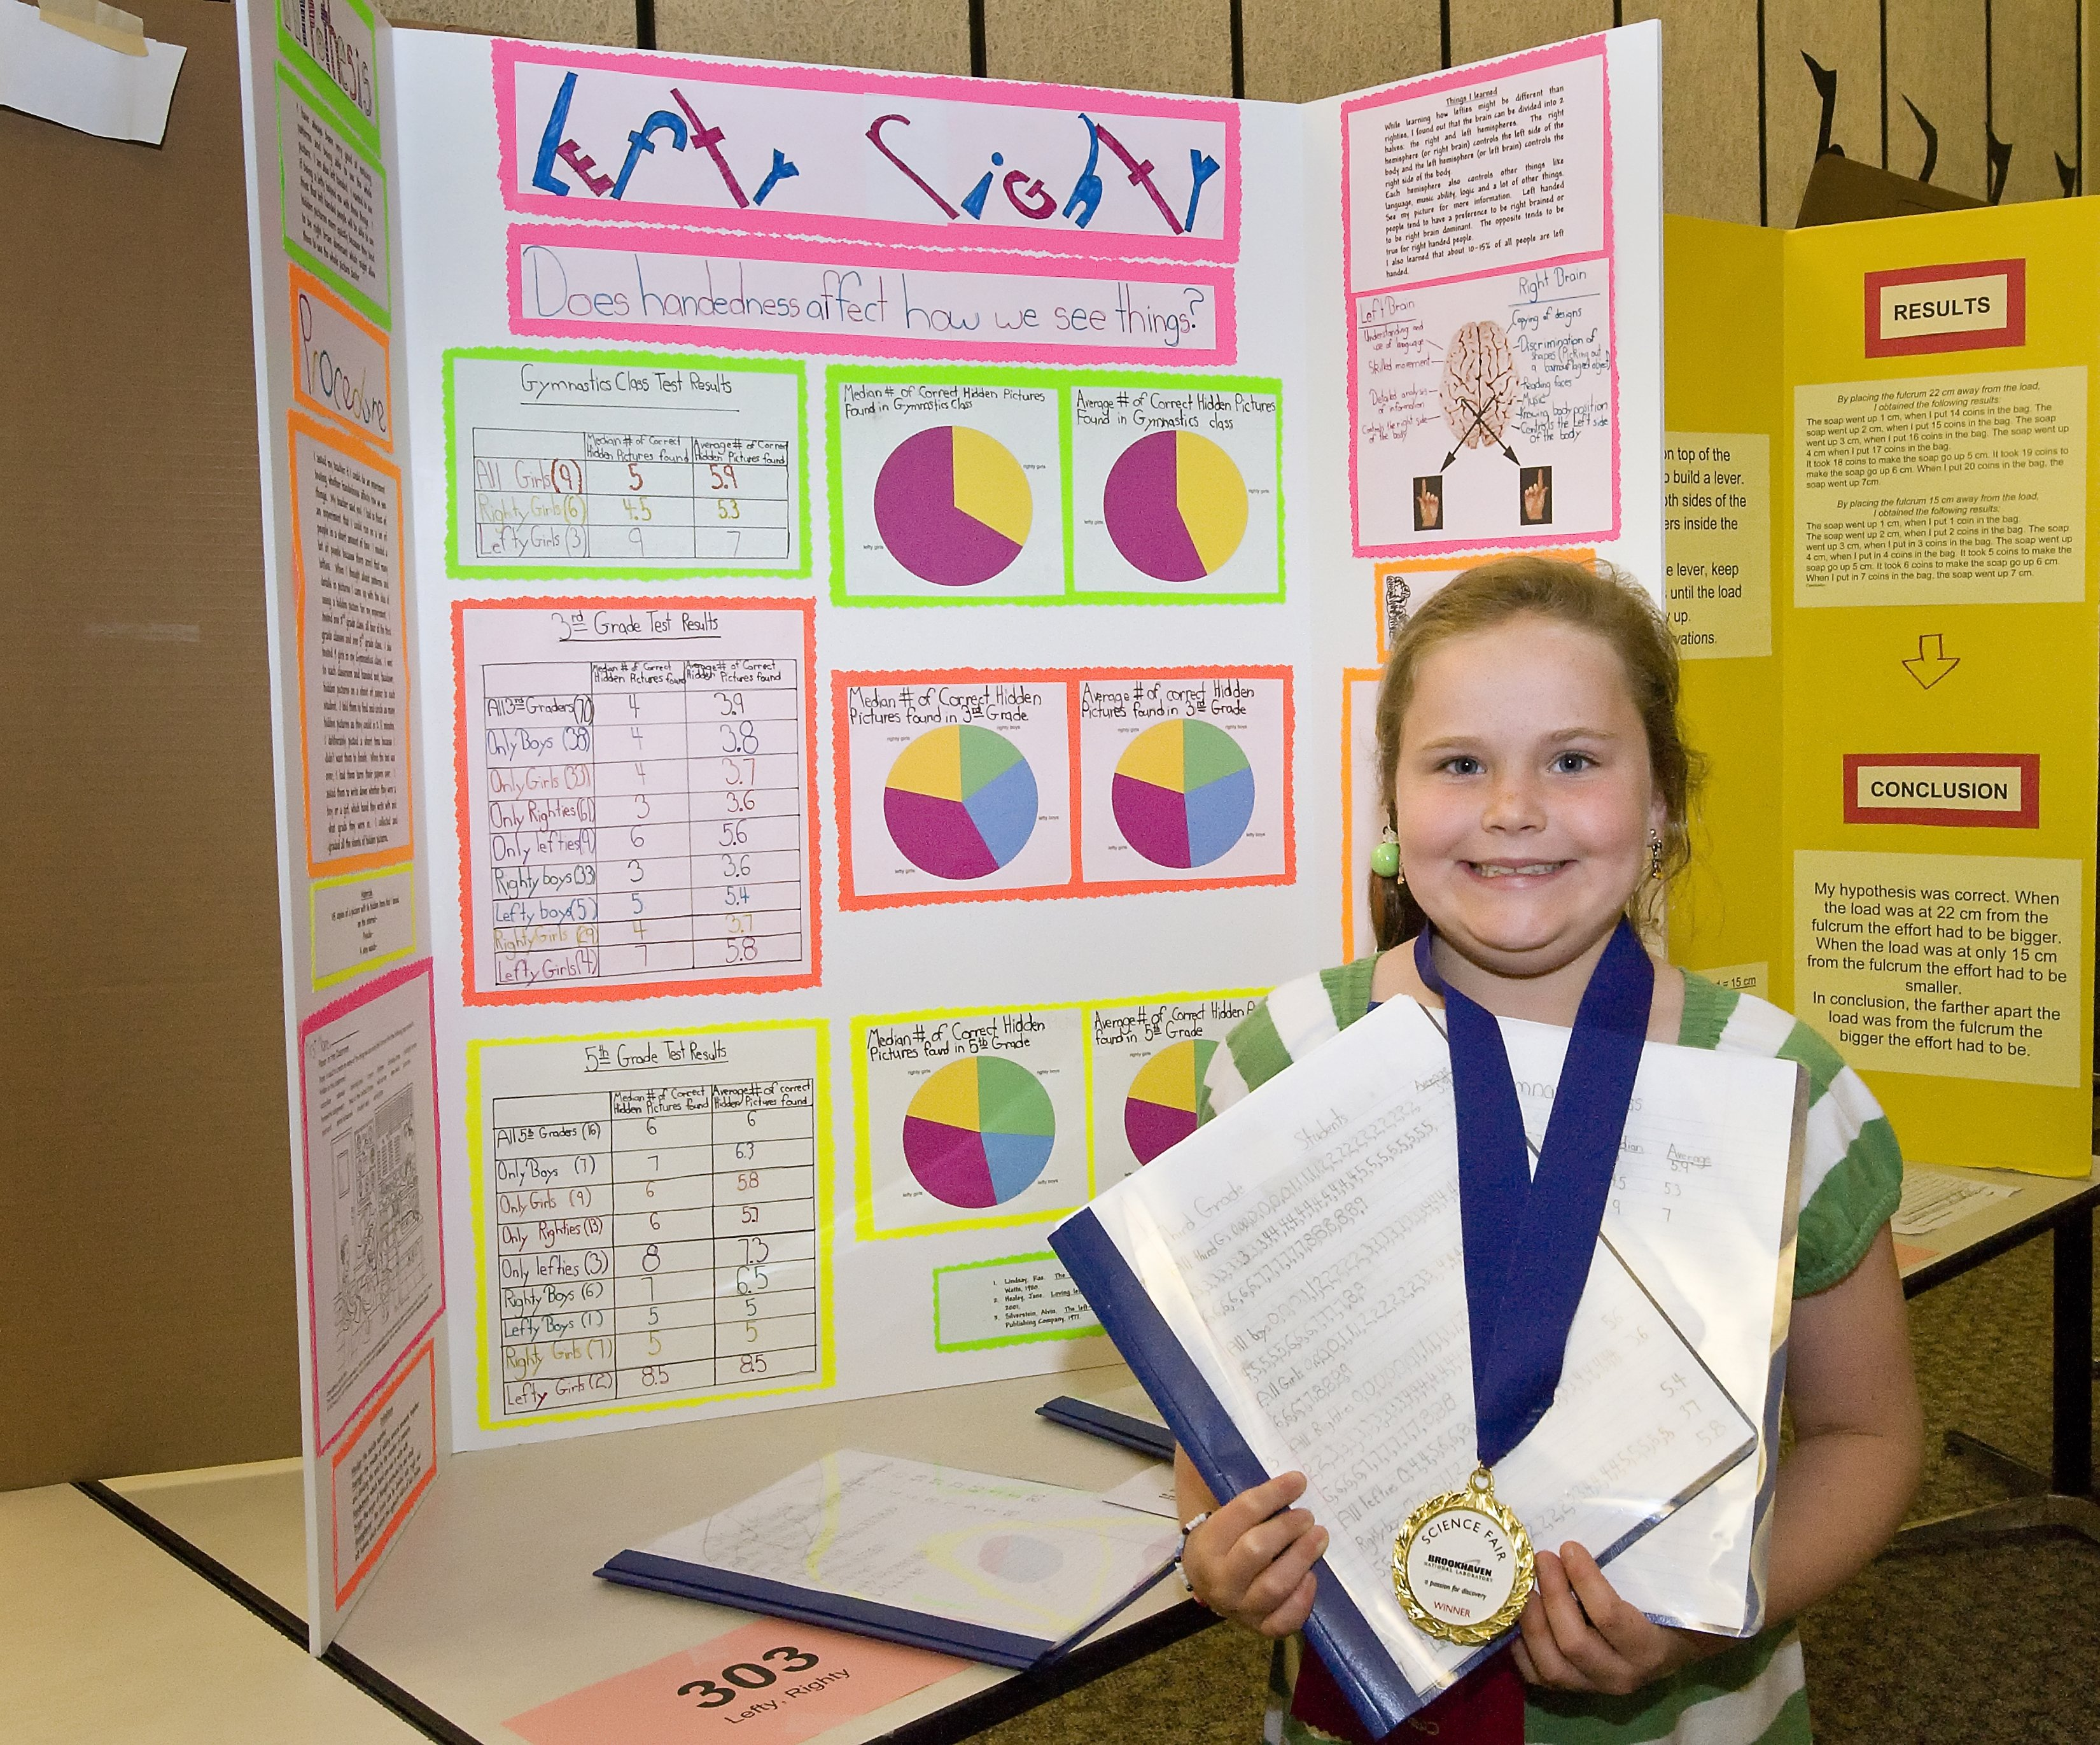 10 Great Science Project Ideas For 3Rd Graders second grade science fair project ideas homeshealth 34 2020